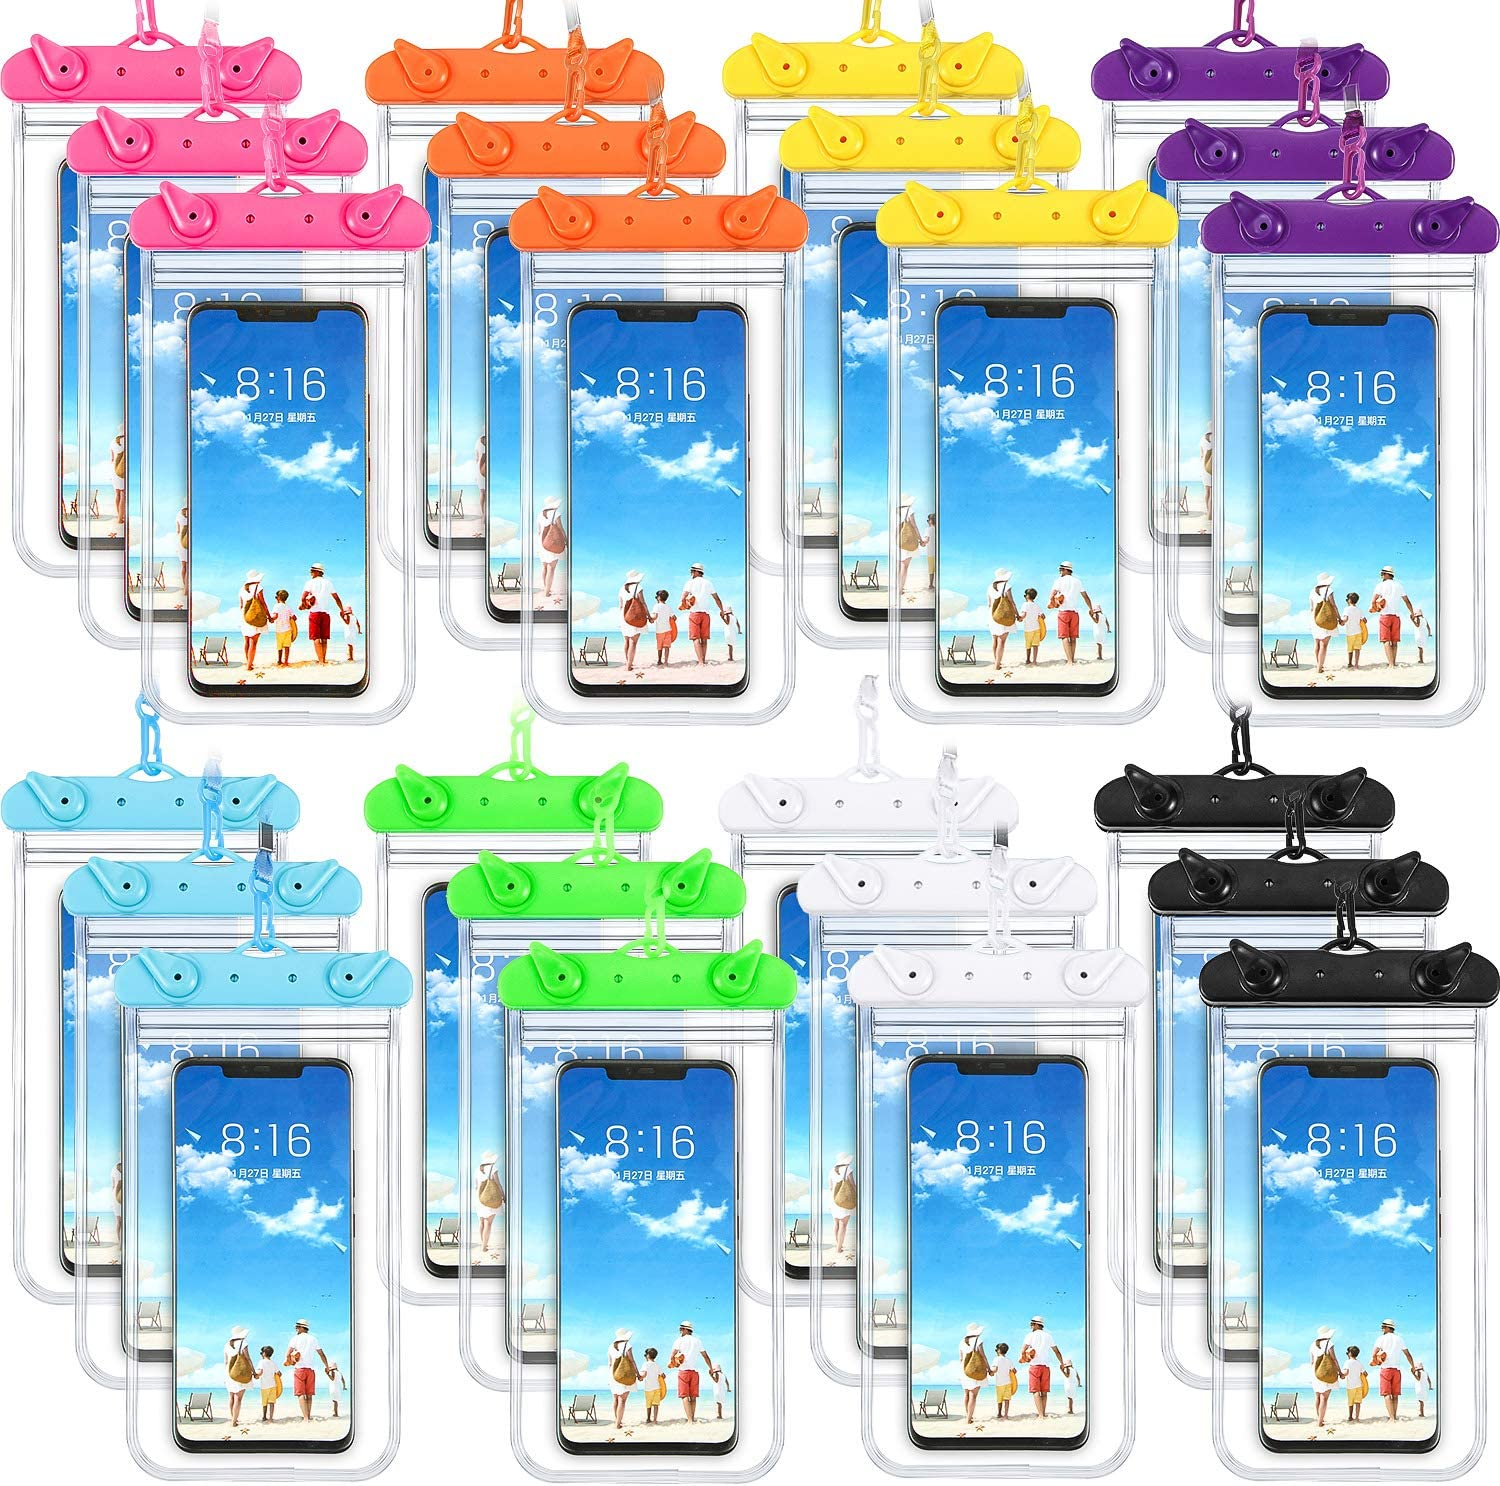 24 Pieces Universal Waterproof Phone Pouch Underwater Clear Phone Case Cellphone Dry Bag Pouch with Lanyard Outdoor Beach Swimming Snorkeling for Smartphone up to 6.9 Inch (Assorted Color)